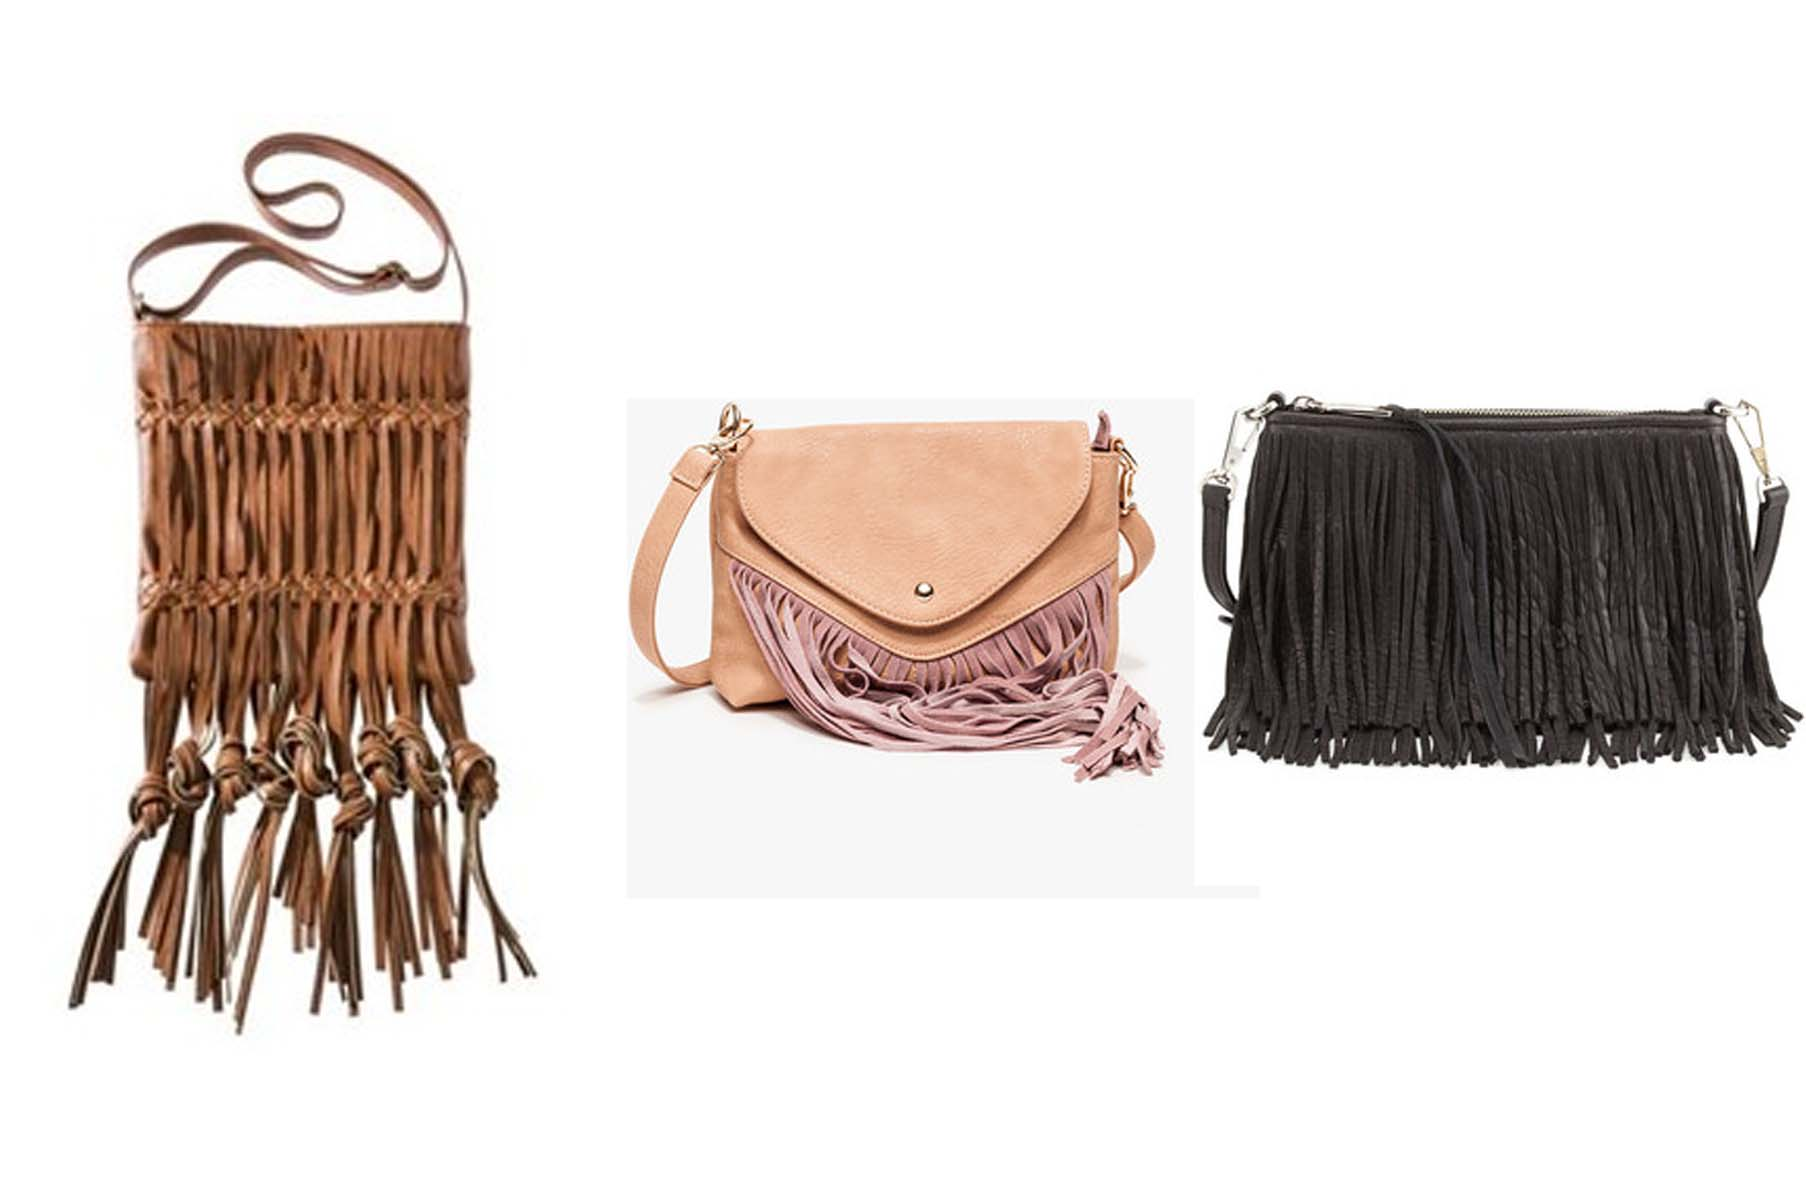 Fringe Mossimo bag from Target $30 (left), fringe cross body $88 and Rebecca Minkoff Finn fringe leather crossbody $195 (Photos: Target, NeedSupply and Neiman Marcus)